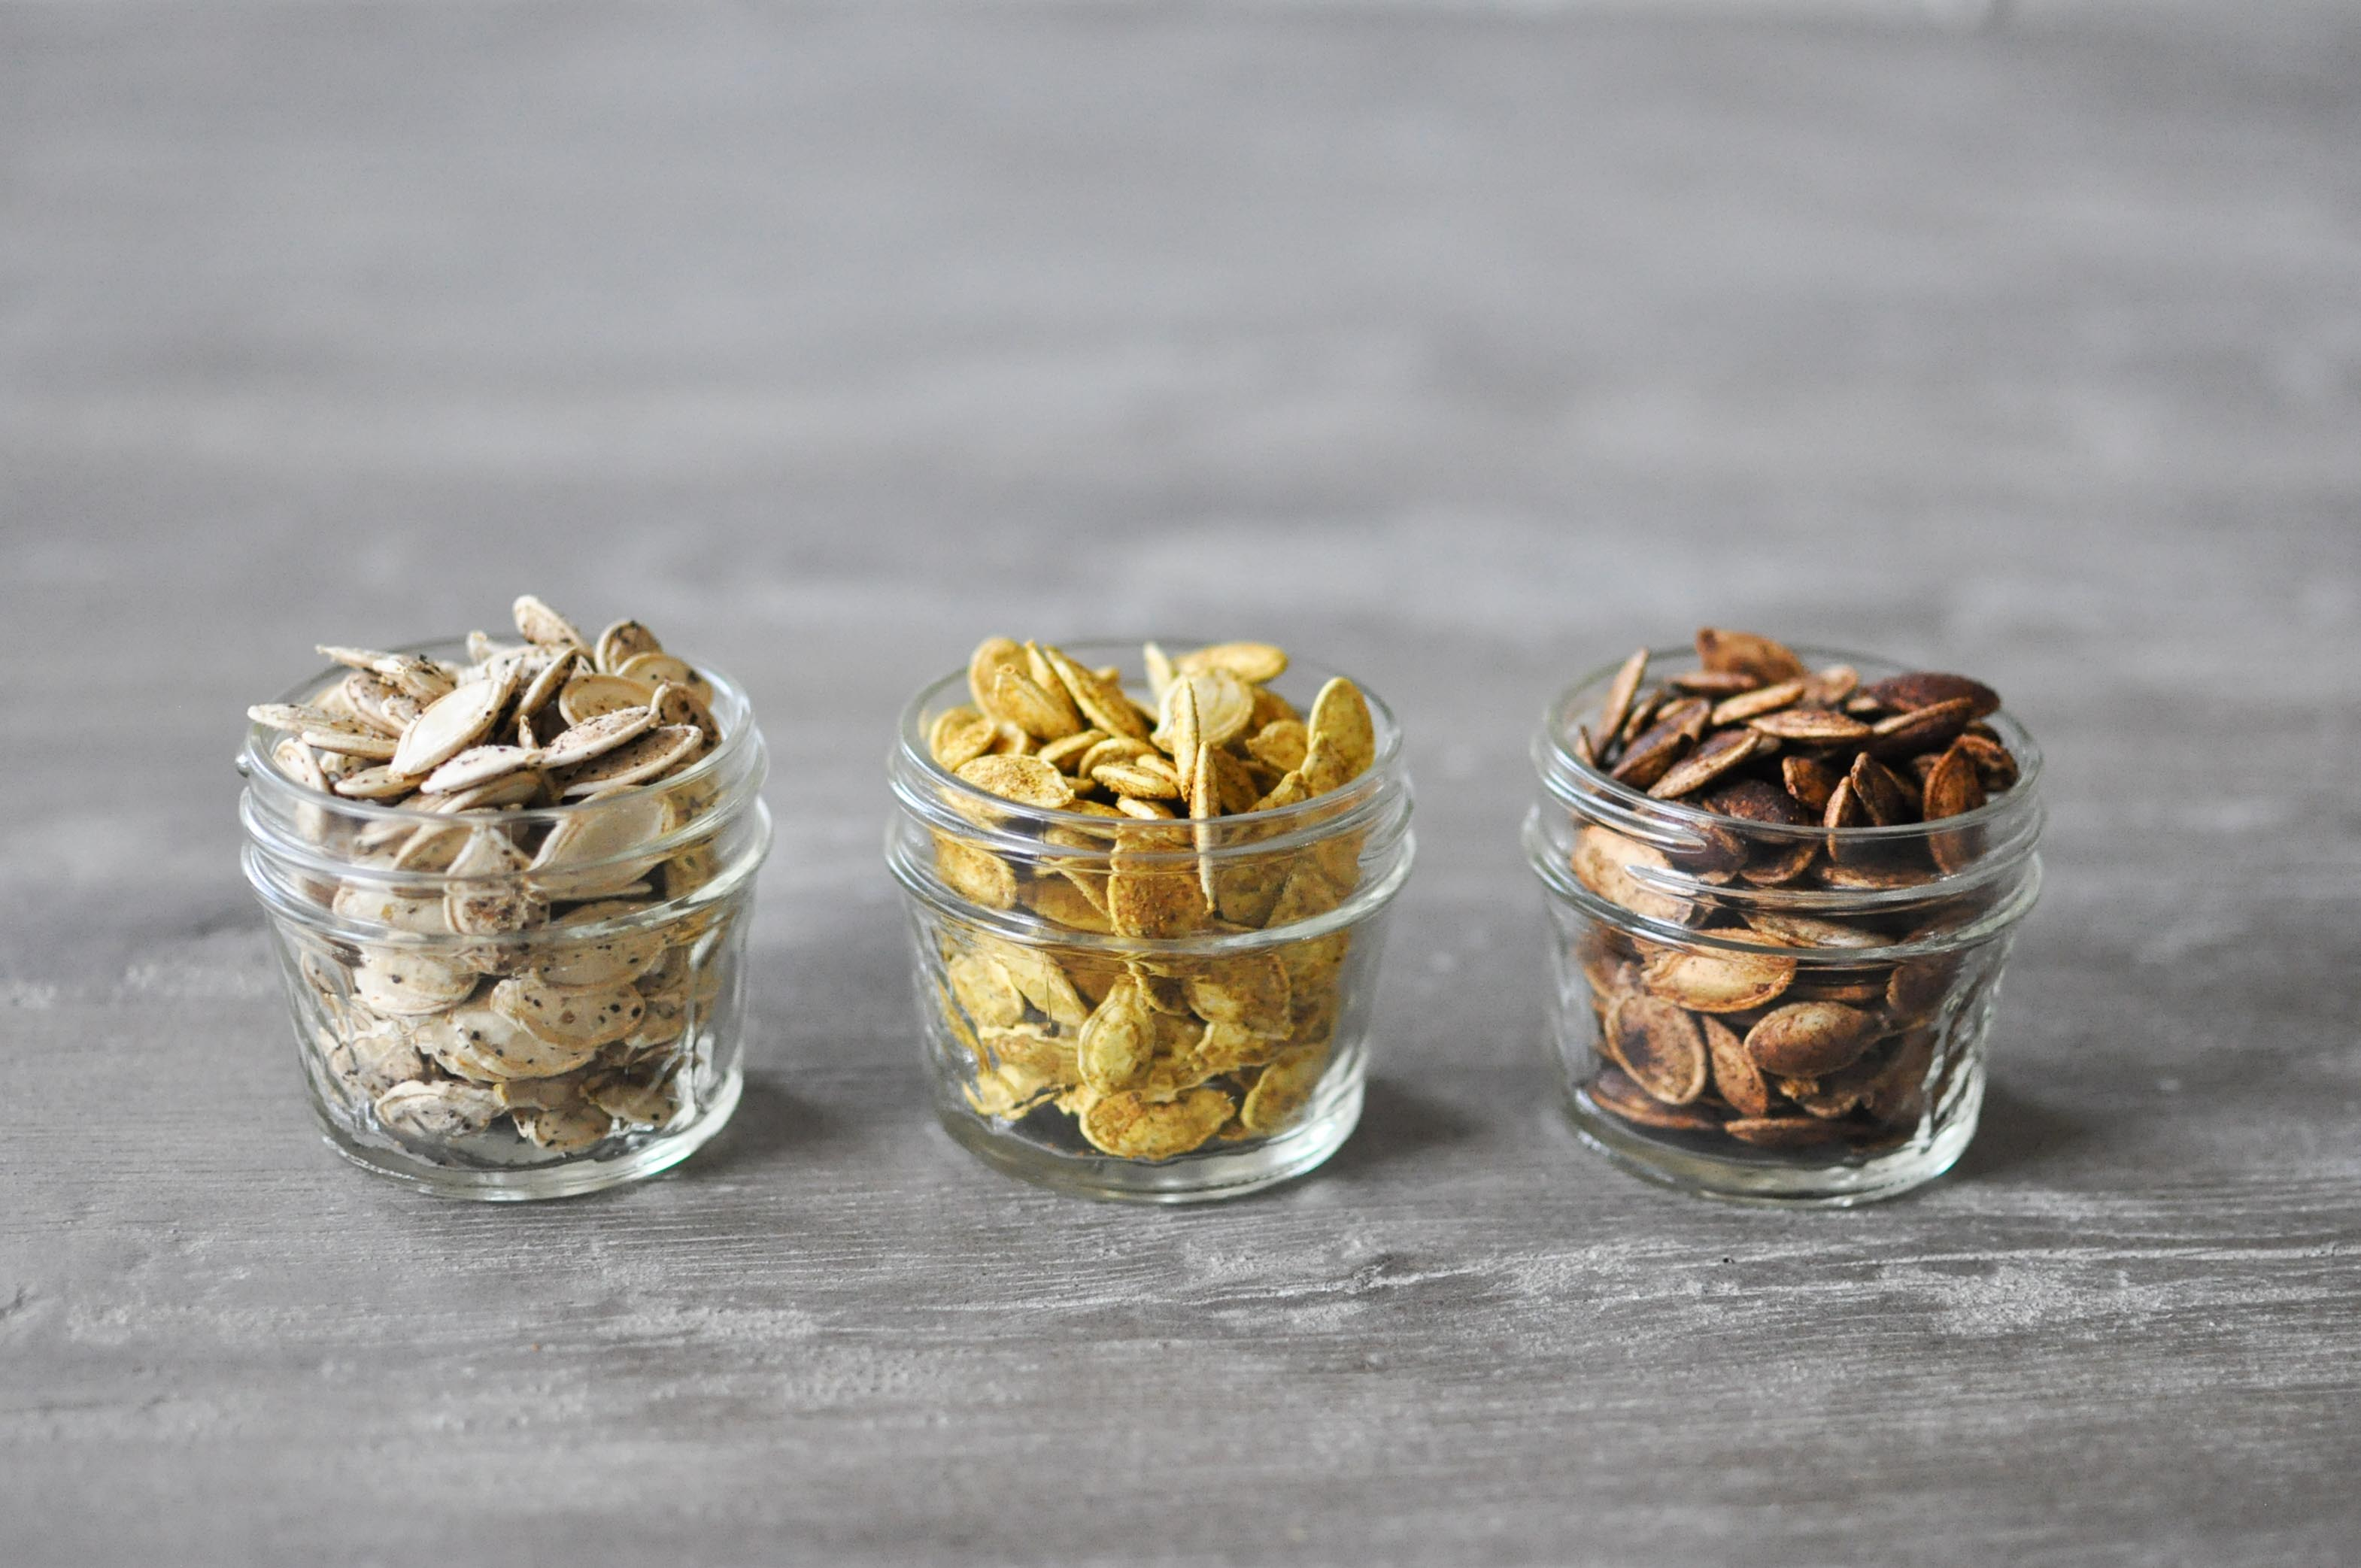 Perfect Homemade Pumpkin Seeds in 3 Flavors | Fed+Fit-15